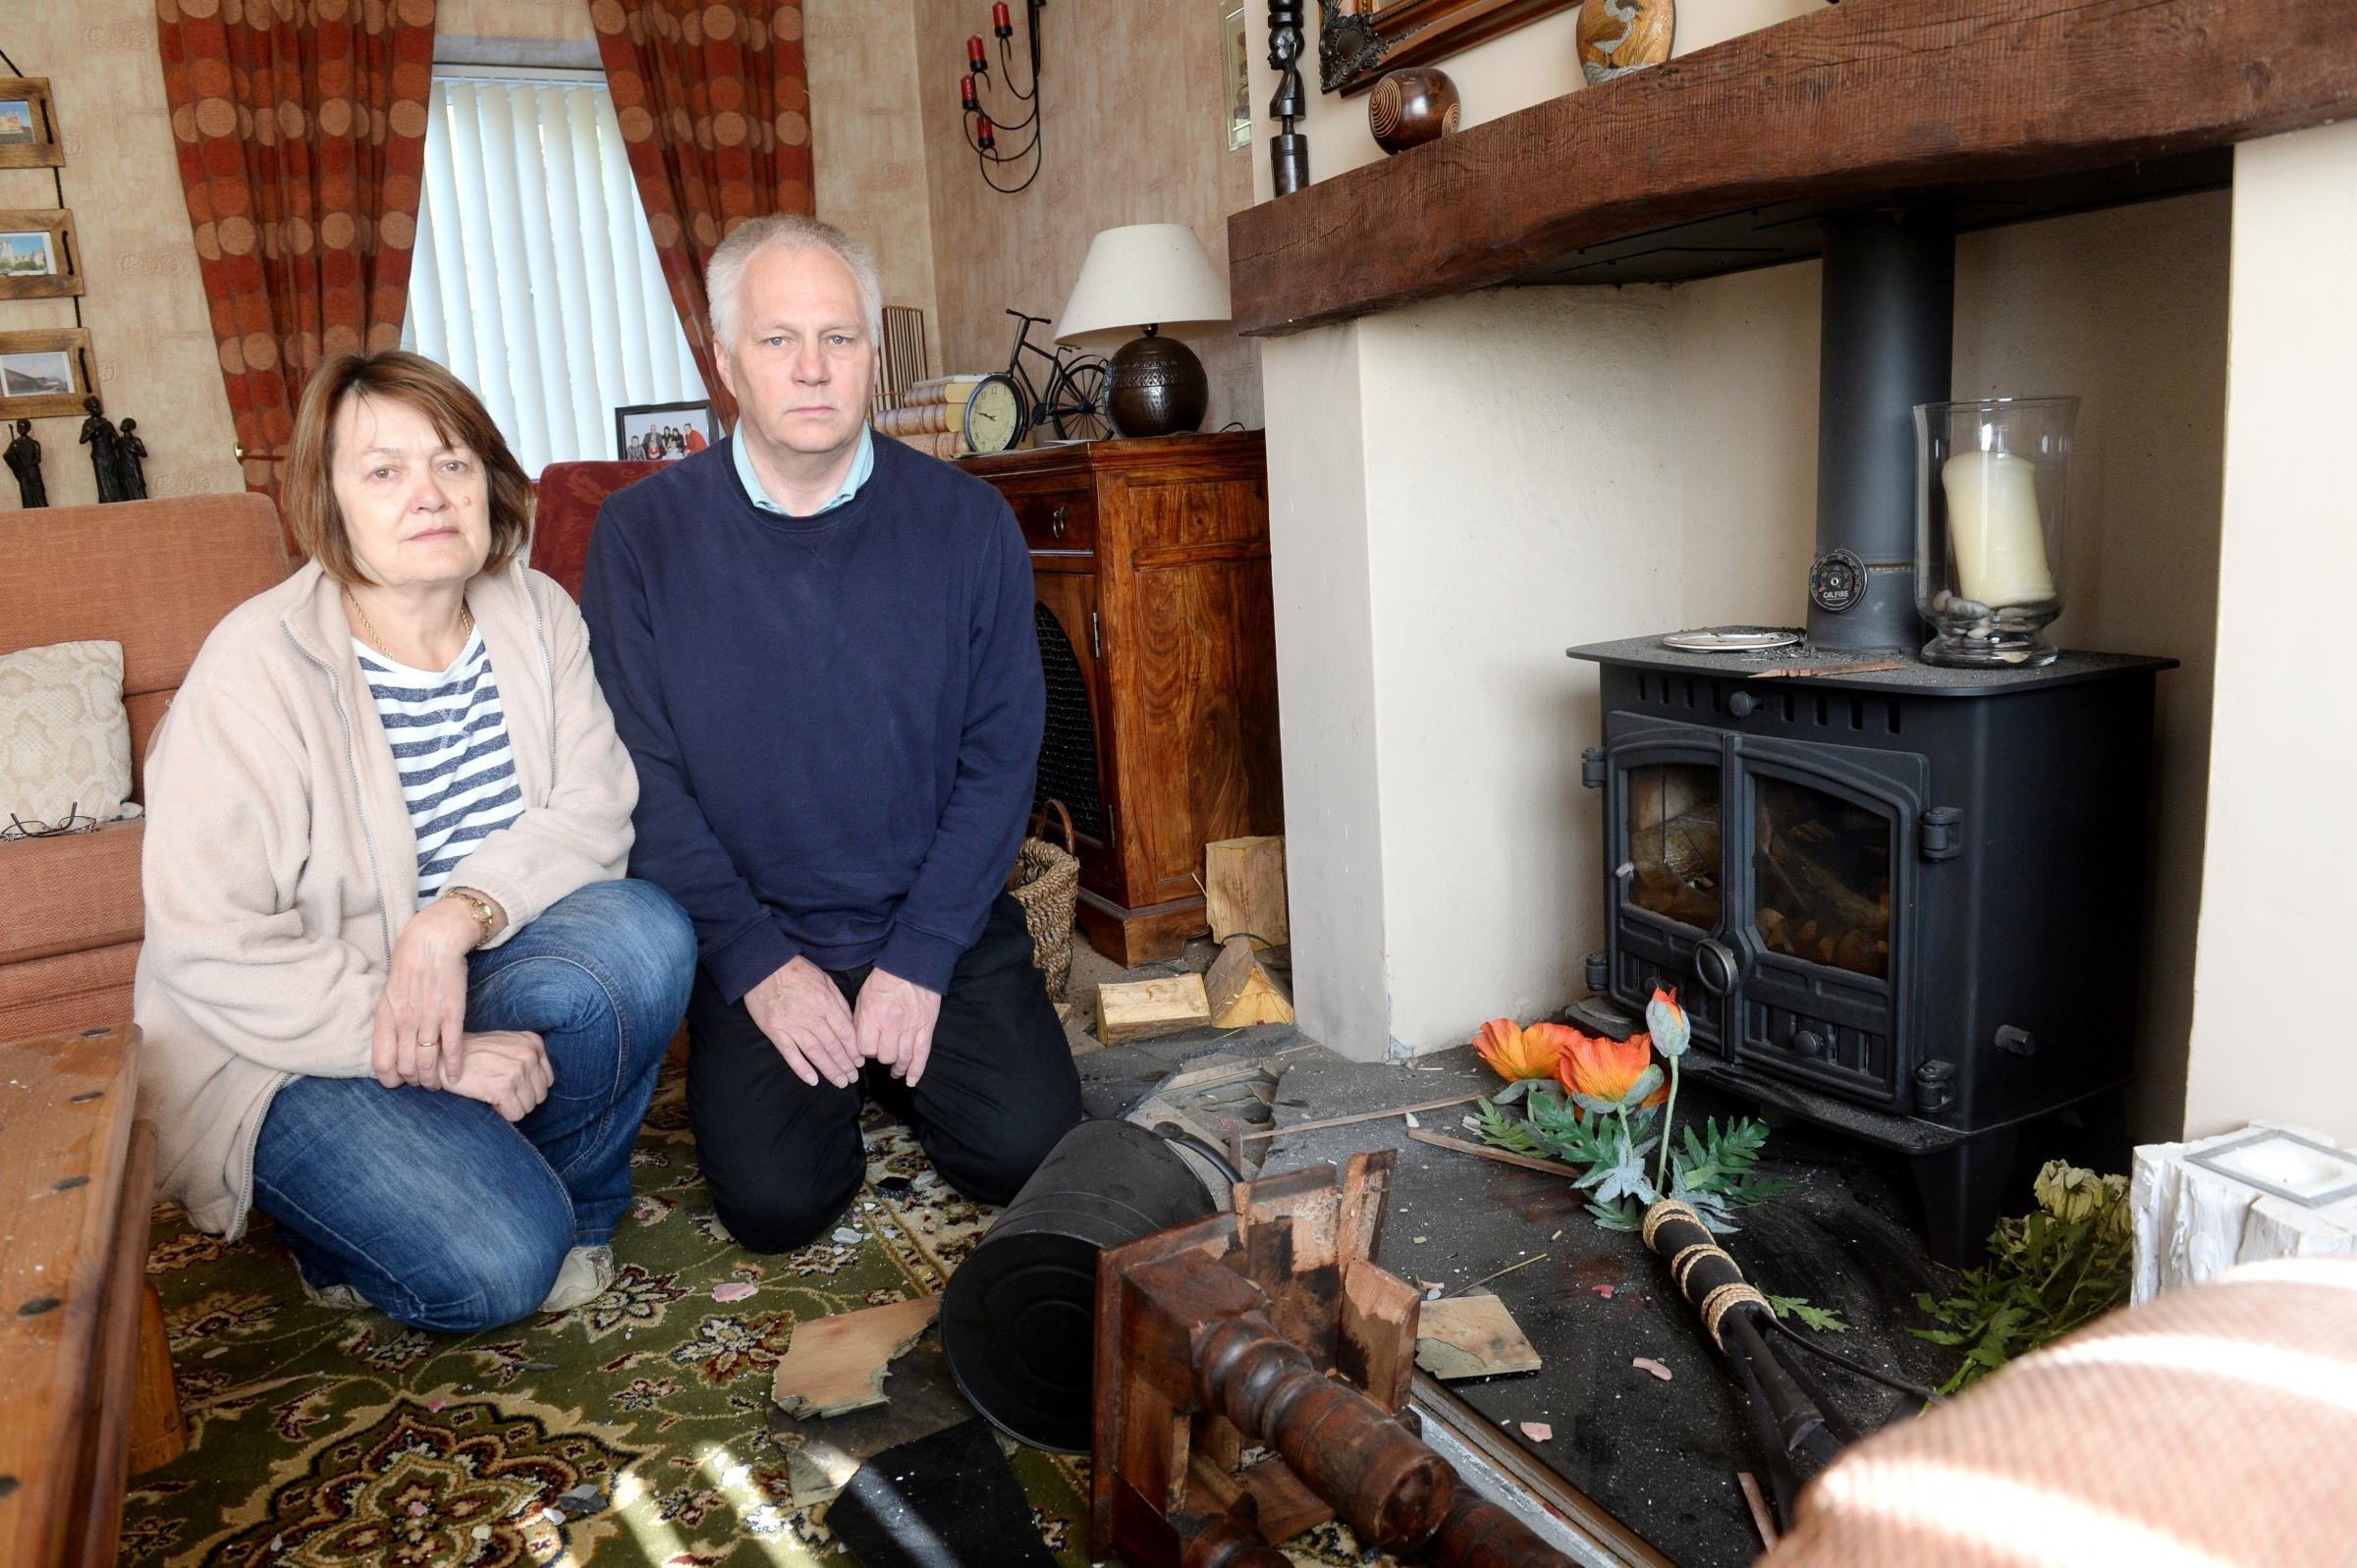 Home of Adrian and Cheyrl Garnham damaged by a lightning strike that hit the chimney of their property in Newbridge. Pictured are Adrian and Cheryl in the living room with the damage caused